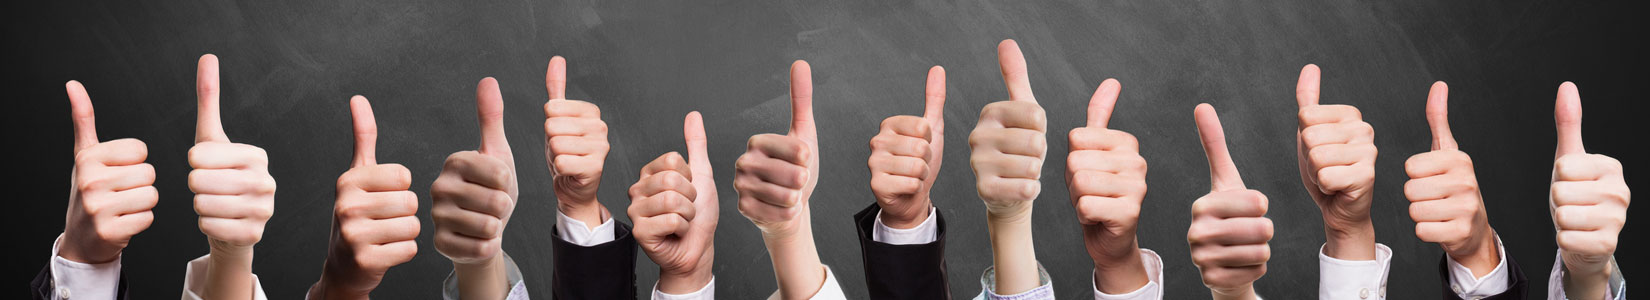 HR compensation with many employee hands showing thumbs up